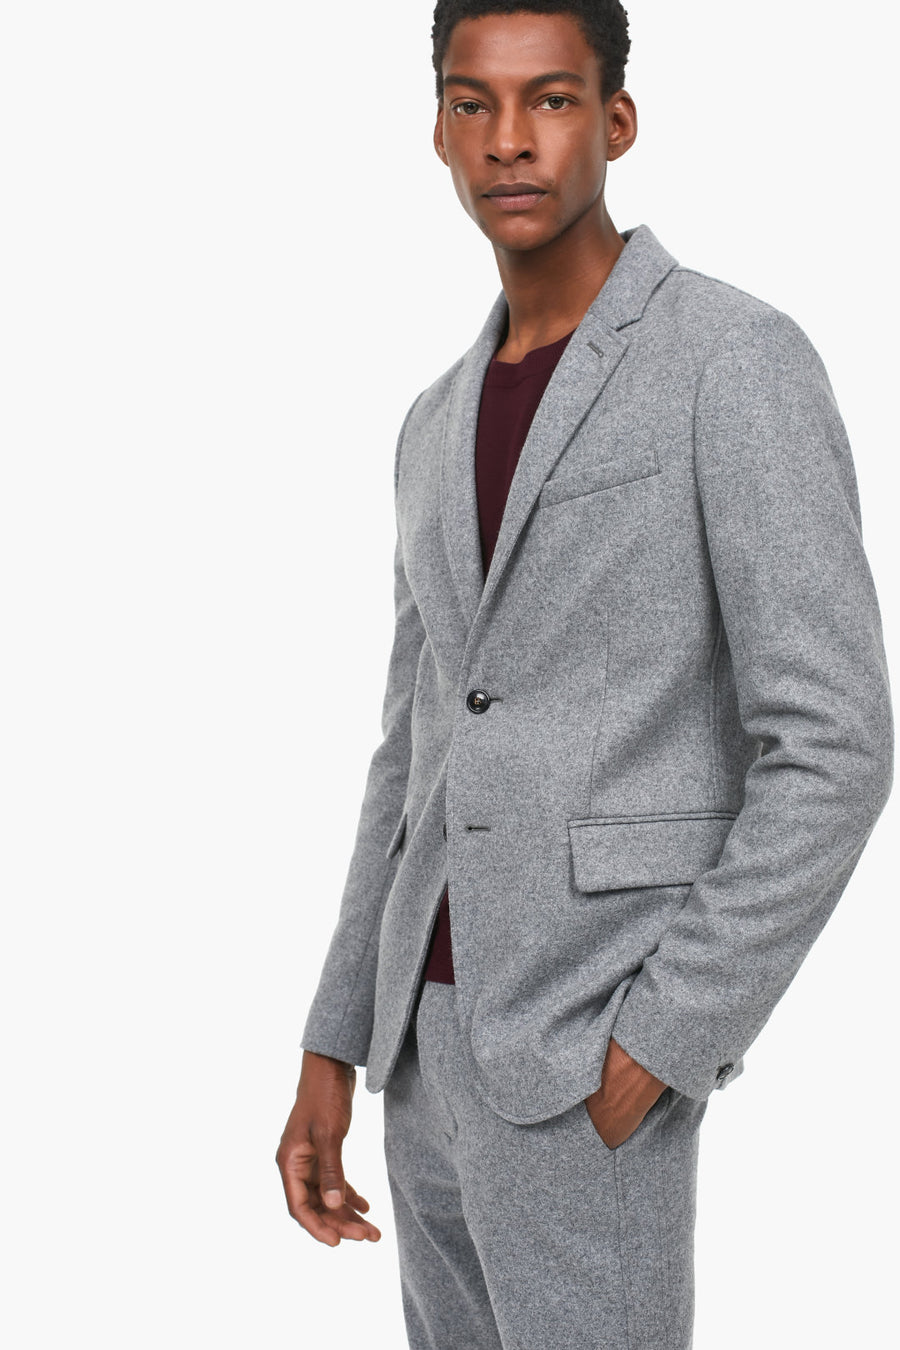 Virgin Wool Jersey Jacket - Pavilion